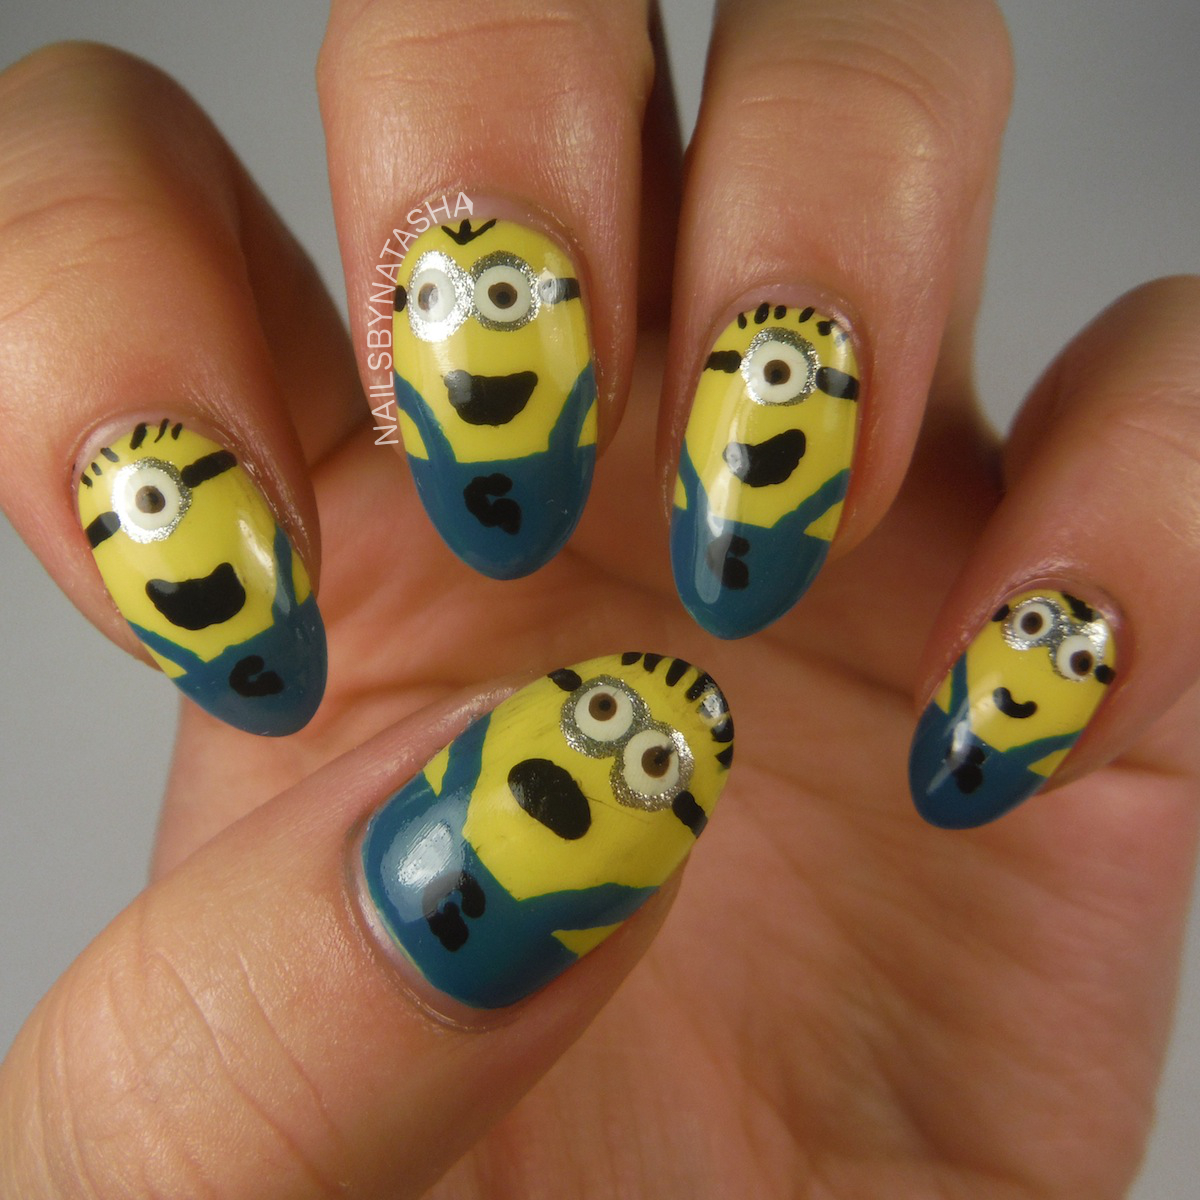 Nails By Natasha: Nail Art August Day 3: Character